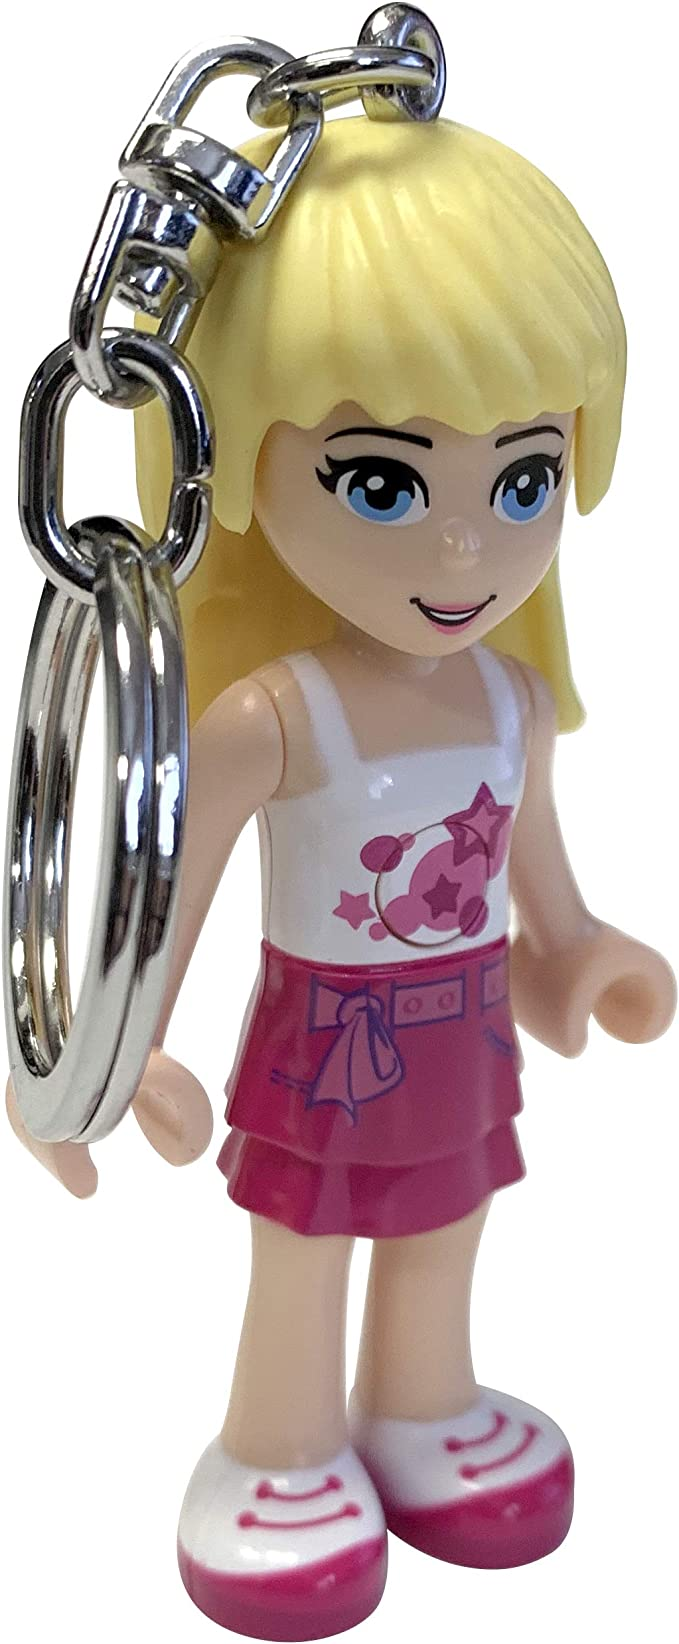 Moving Parts LEGO Friends Stephanie Keychain Light 2.75 Inch Perfect for Backpacks Long Lasting LEDs Keychains